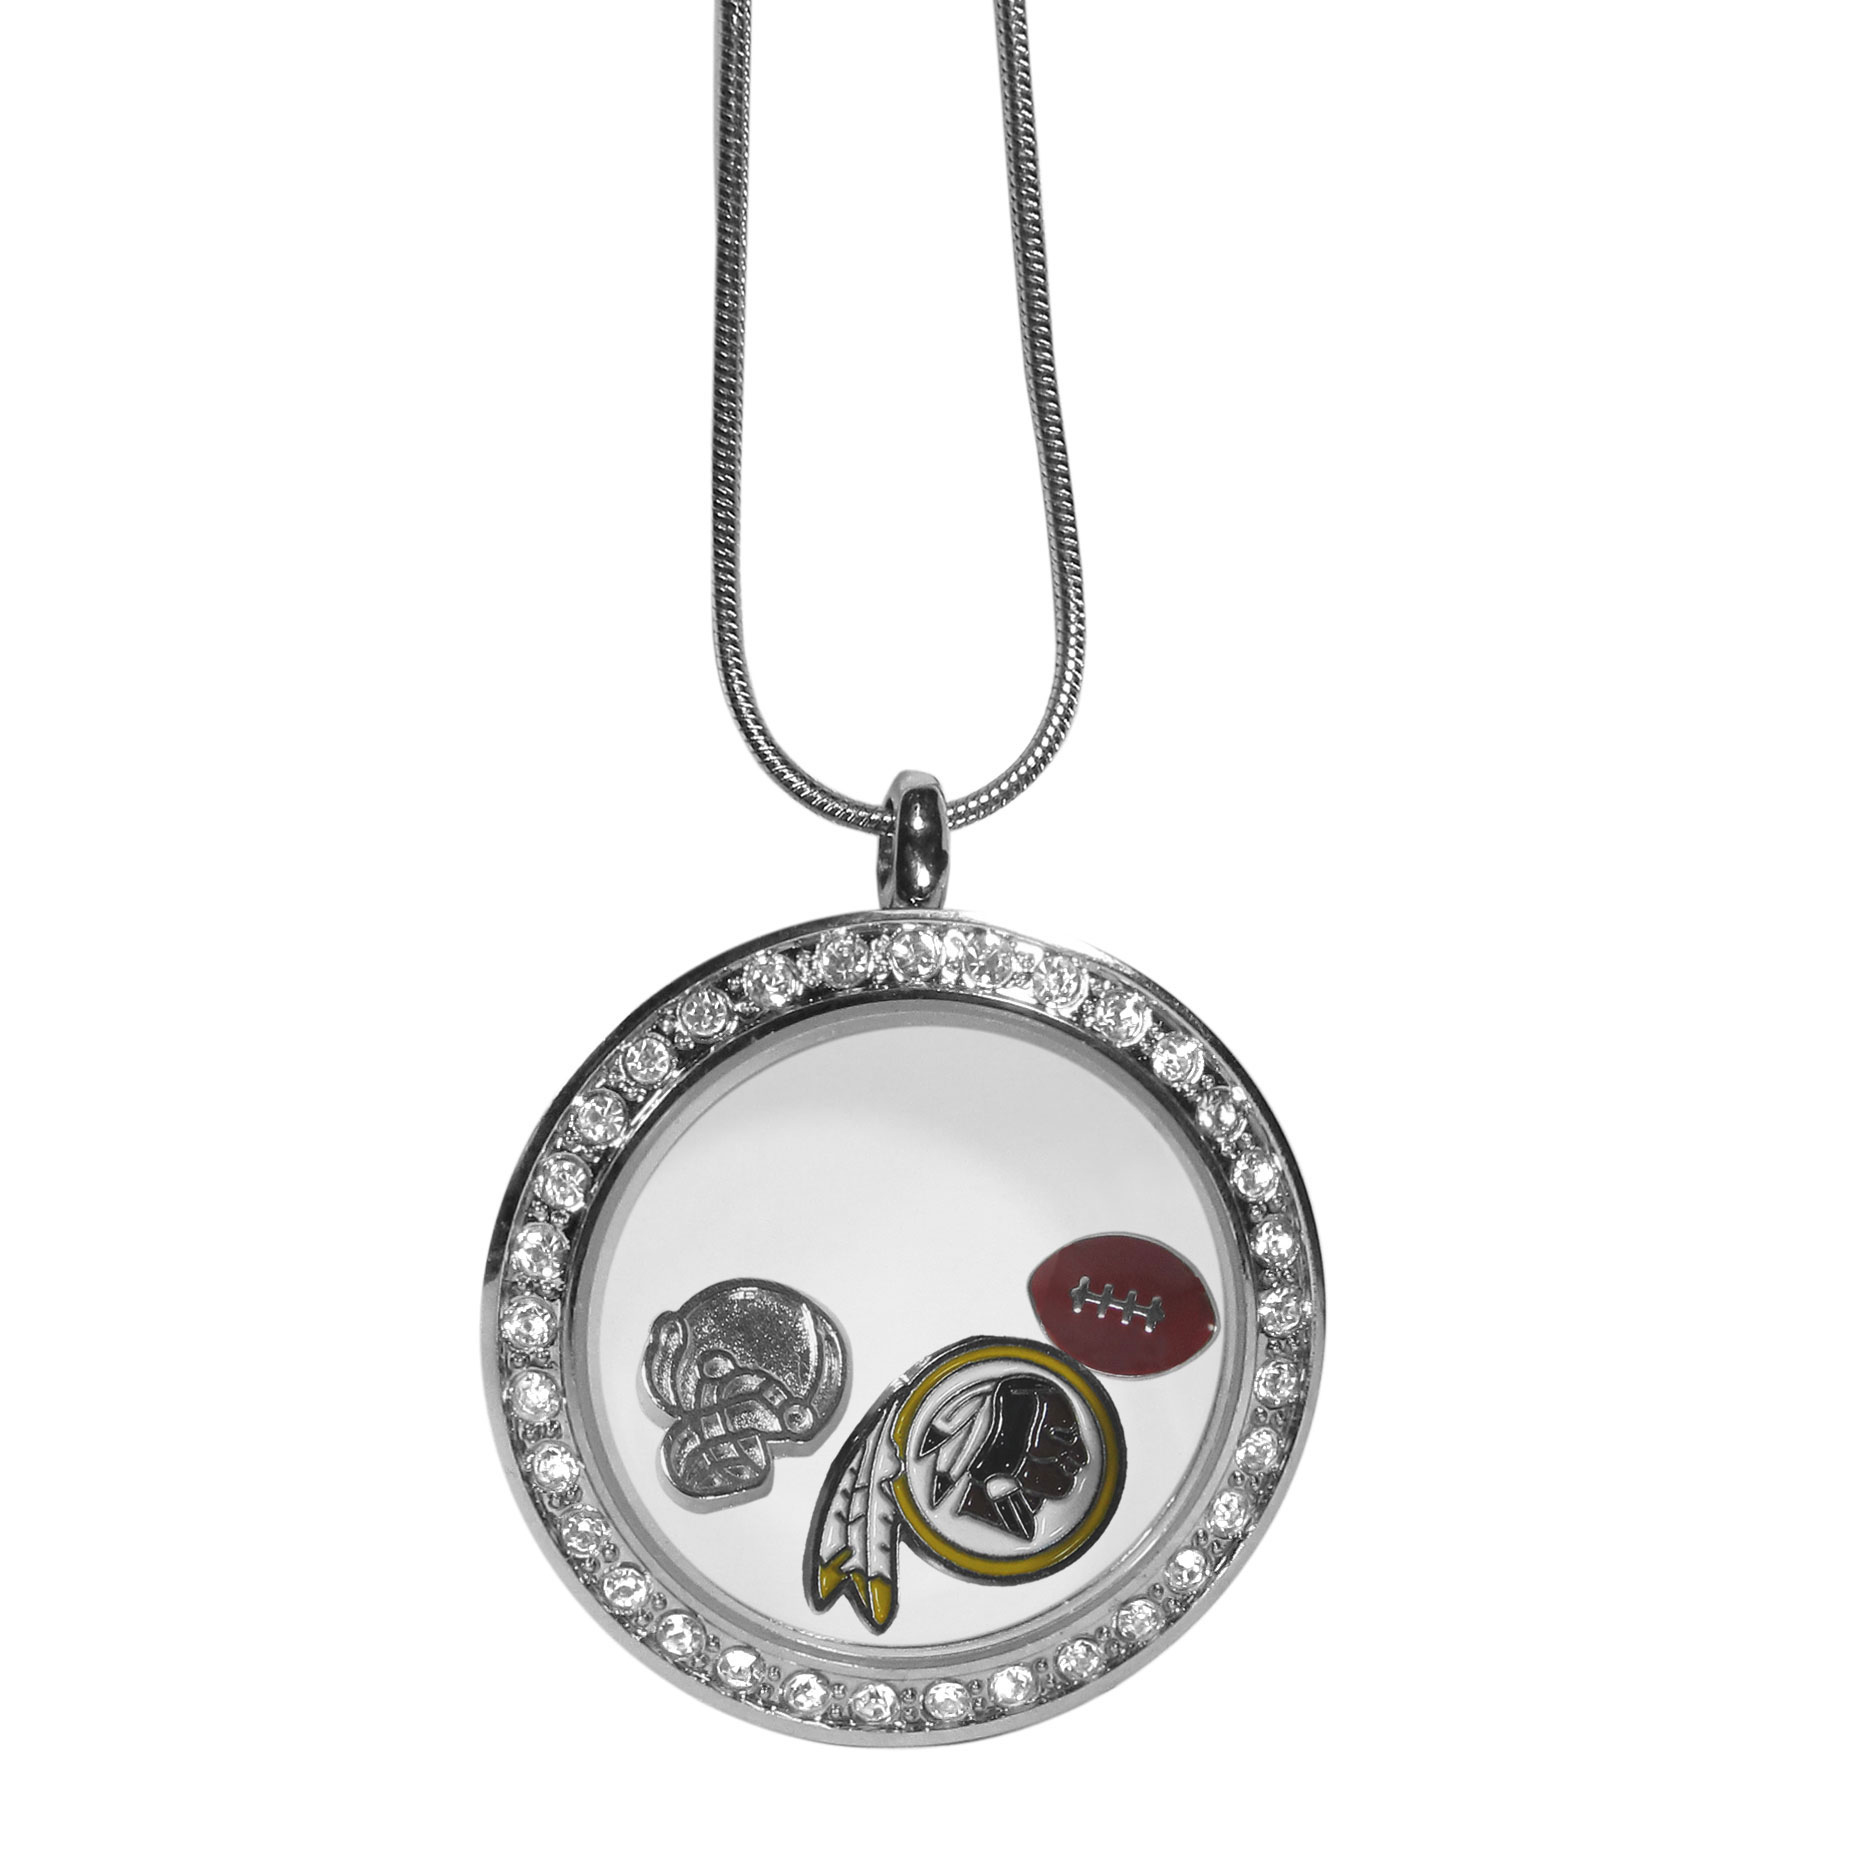 Washington Redskins Locket Necklace - We have taken the classic floating charm locket and combined with licensed sports charms to create a must have fan necklace. The necklace comes with 3 charms; 1 Washington Redskins charm, one football charm and one helmet charm. The charms float in a beautiful locket that has a strong magnetic closure with a rhinestone border. The locket comes on an 18 inch snake chain with 2 inch extender.